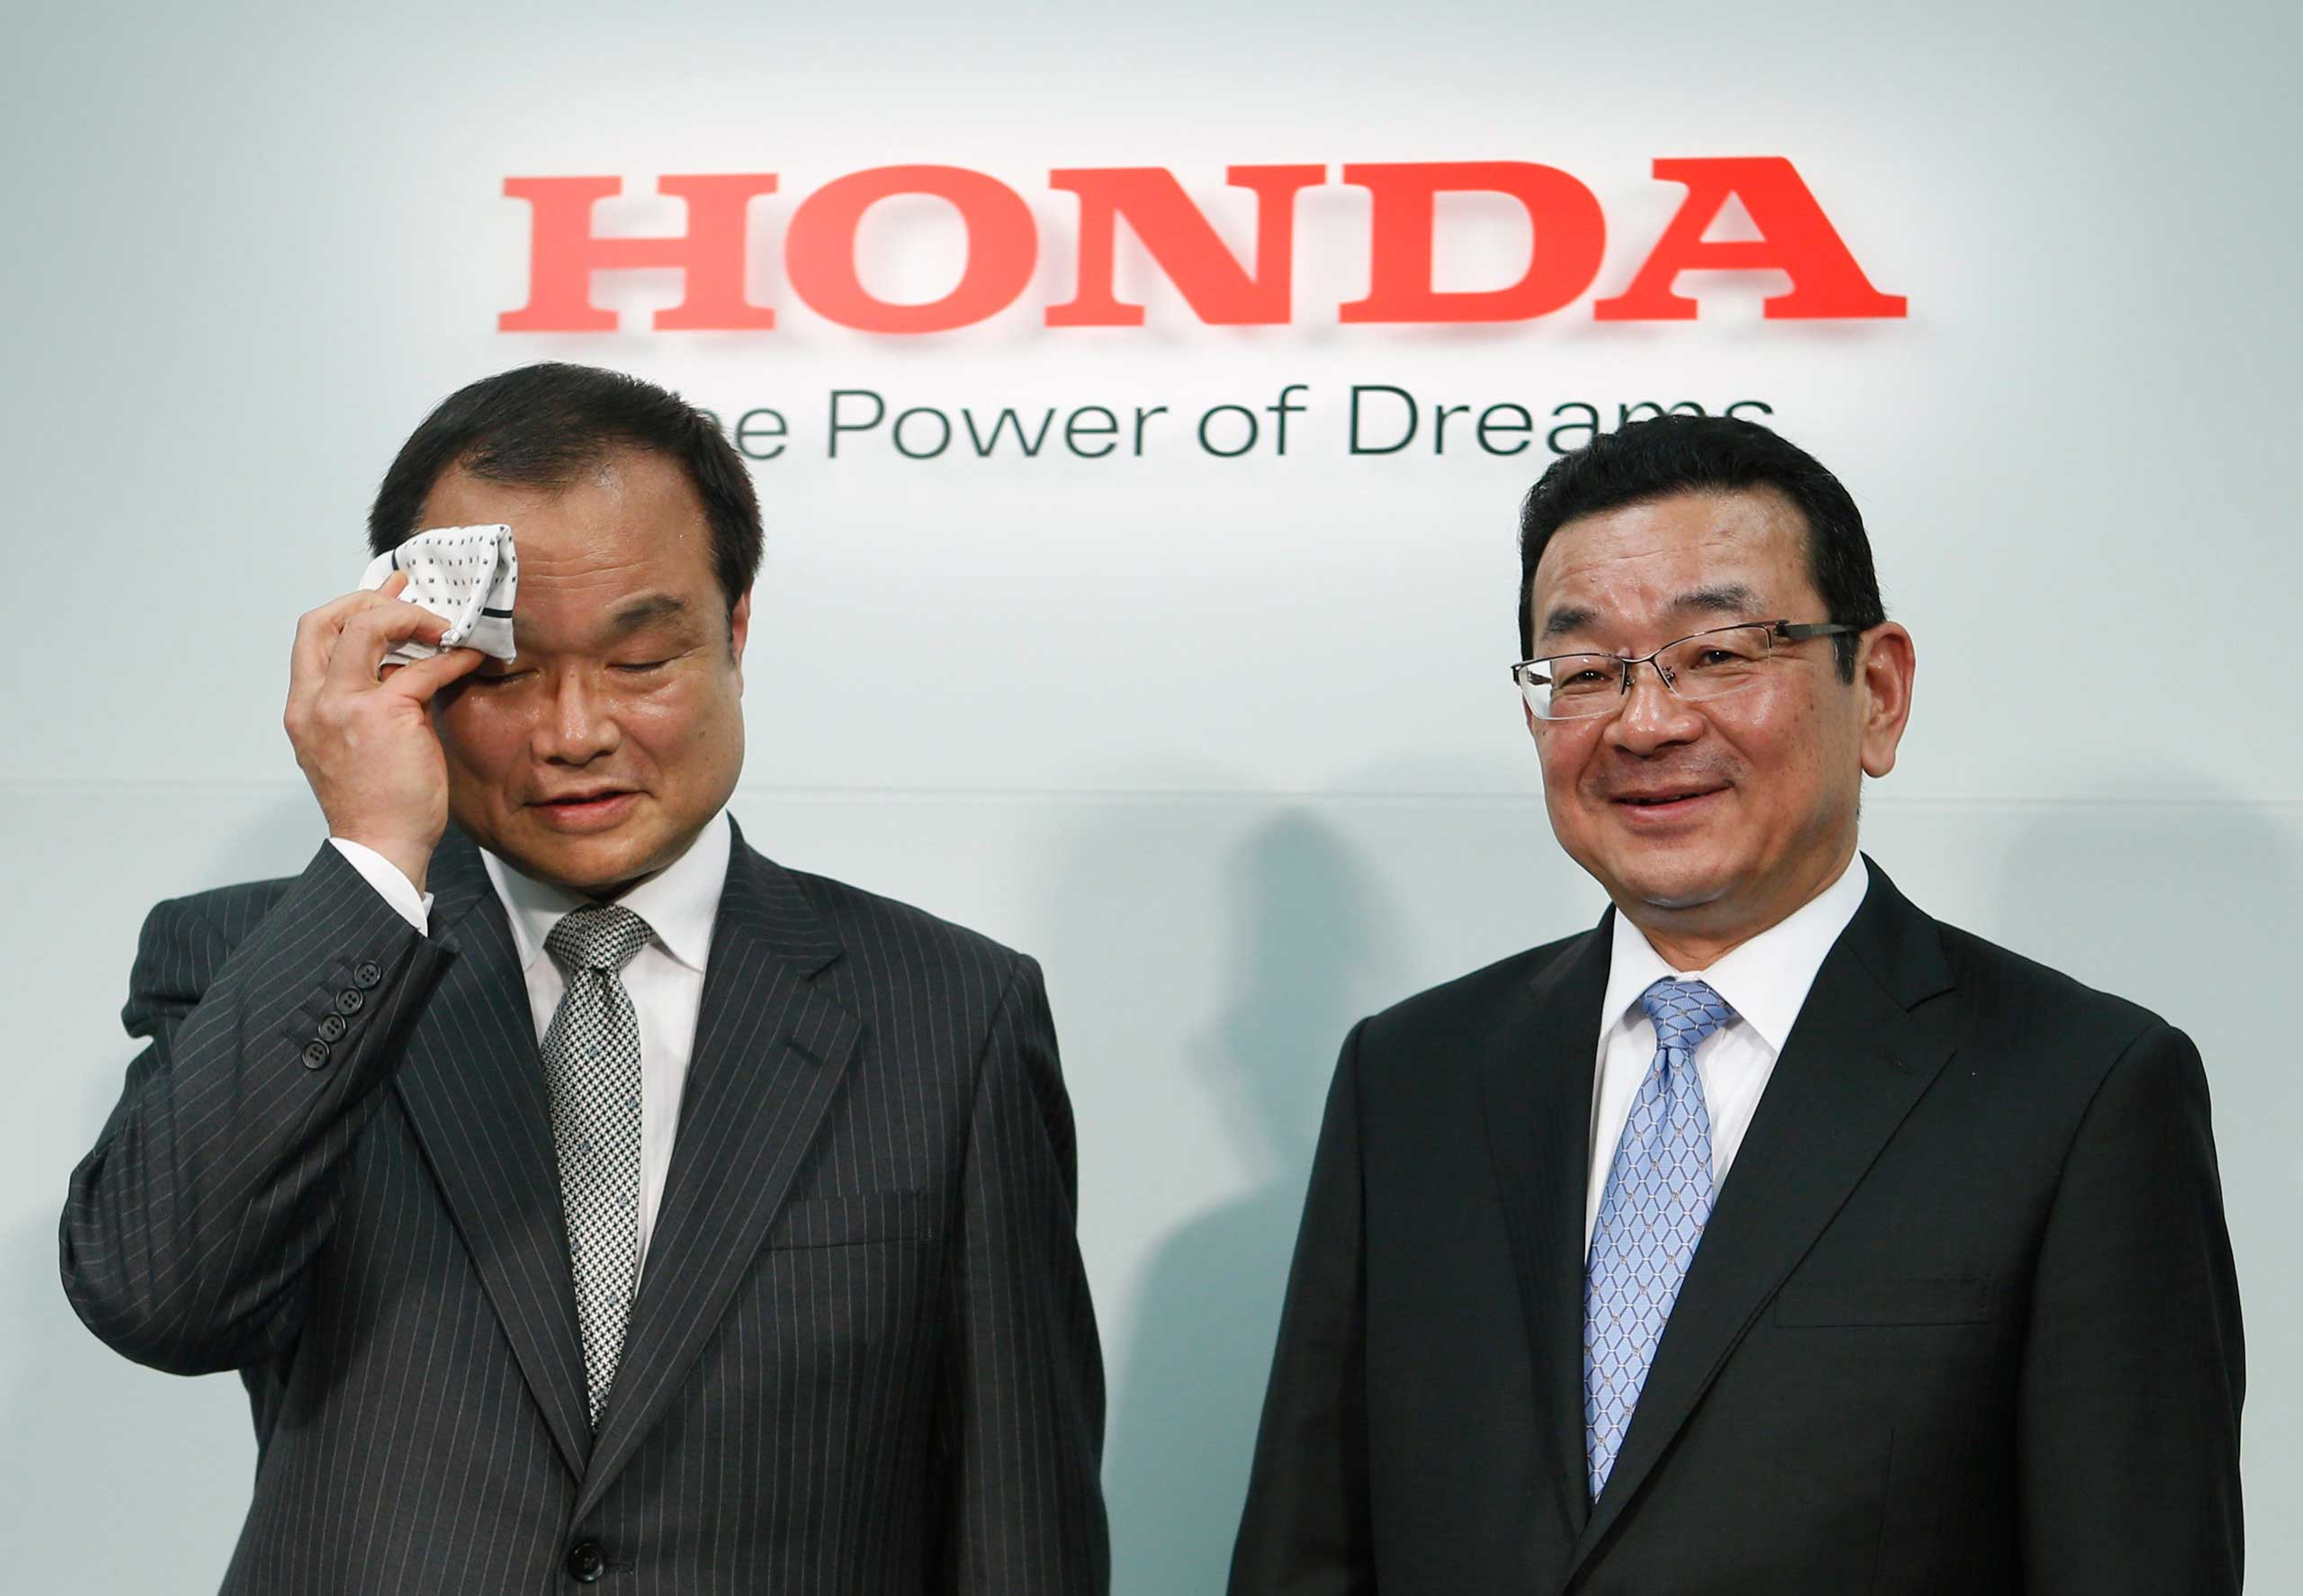 Honda Motor Co's incoming President and Chief Executive Officer Takahiro Hachigo and outgoing President and CEO Takanobu Ito attend a news conference at the company's headquarters in Tokyo, Feb. 23, 2015.